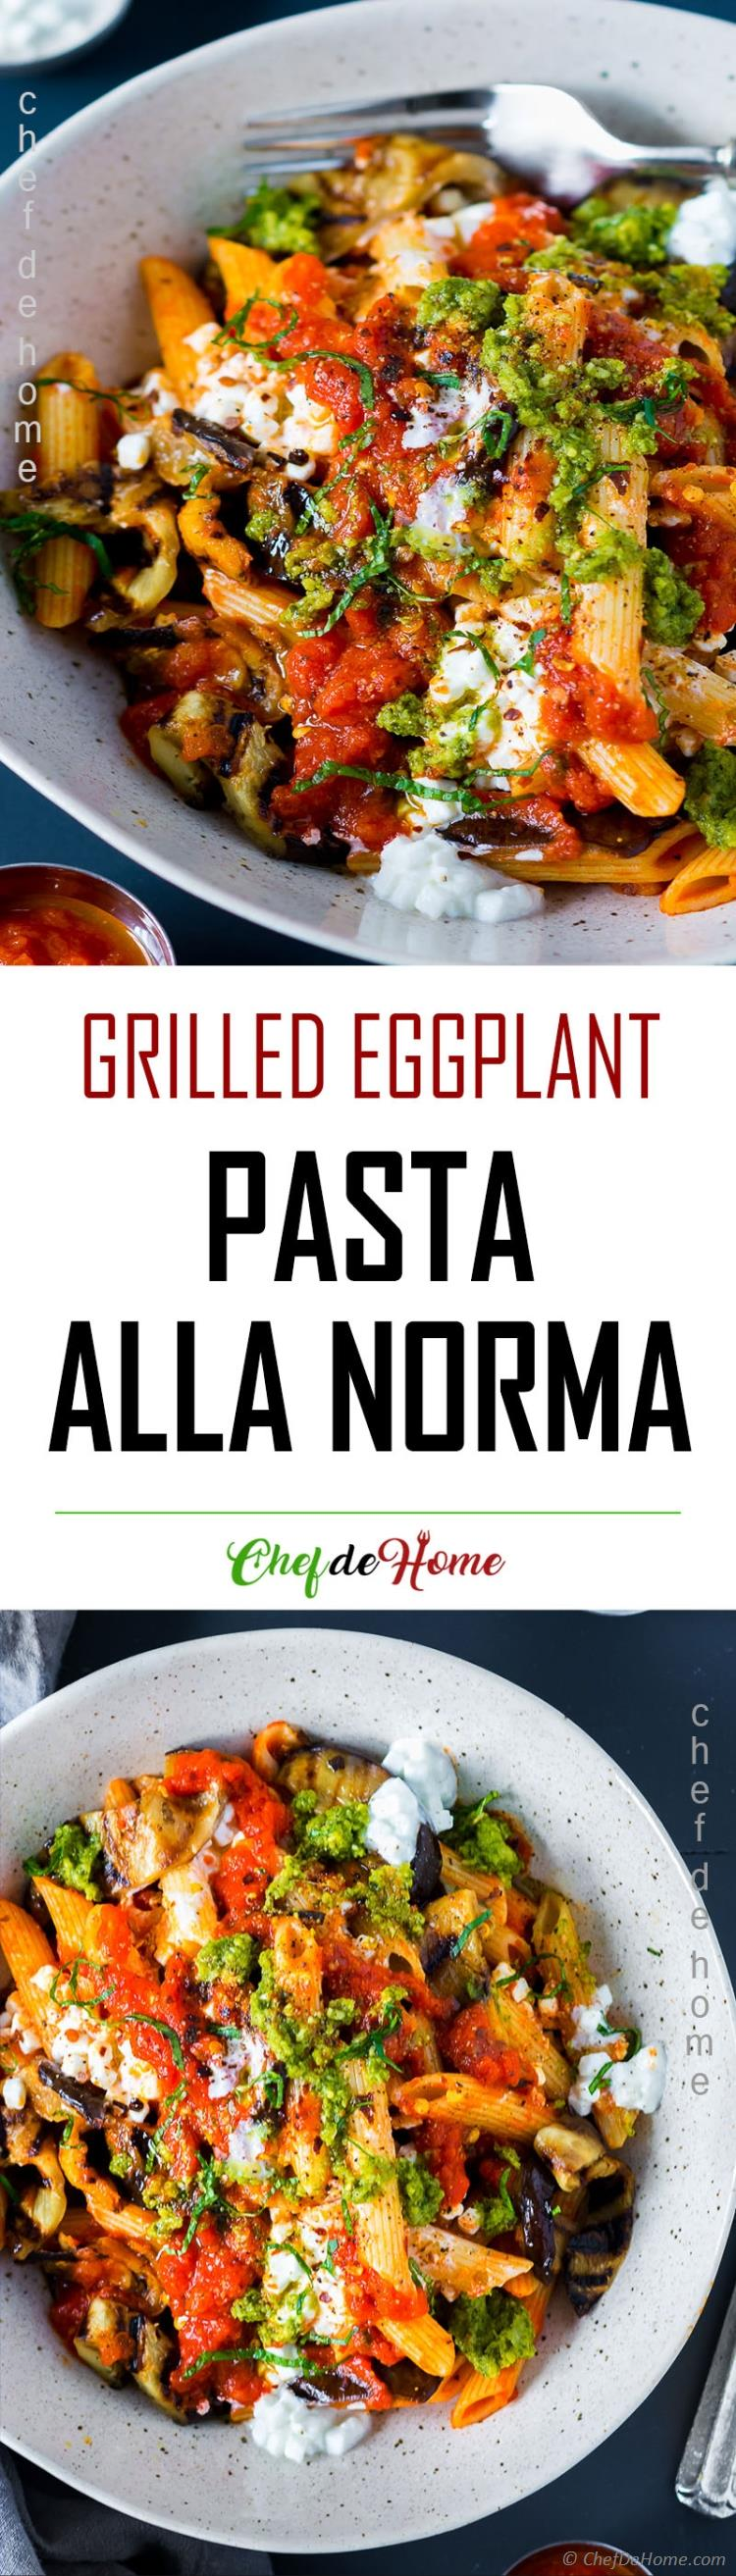 Homemade Pasta Norma Bowl with Grilled Eggplant